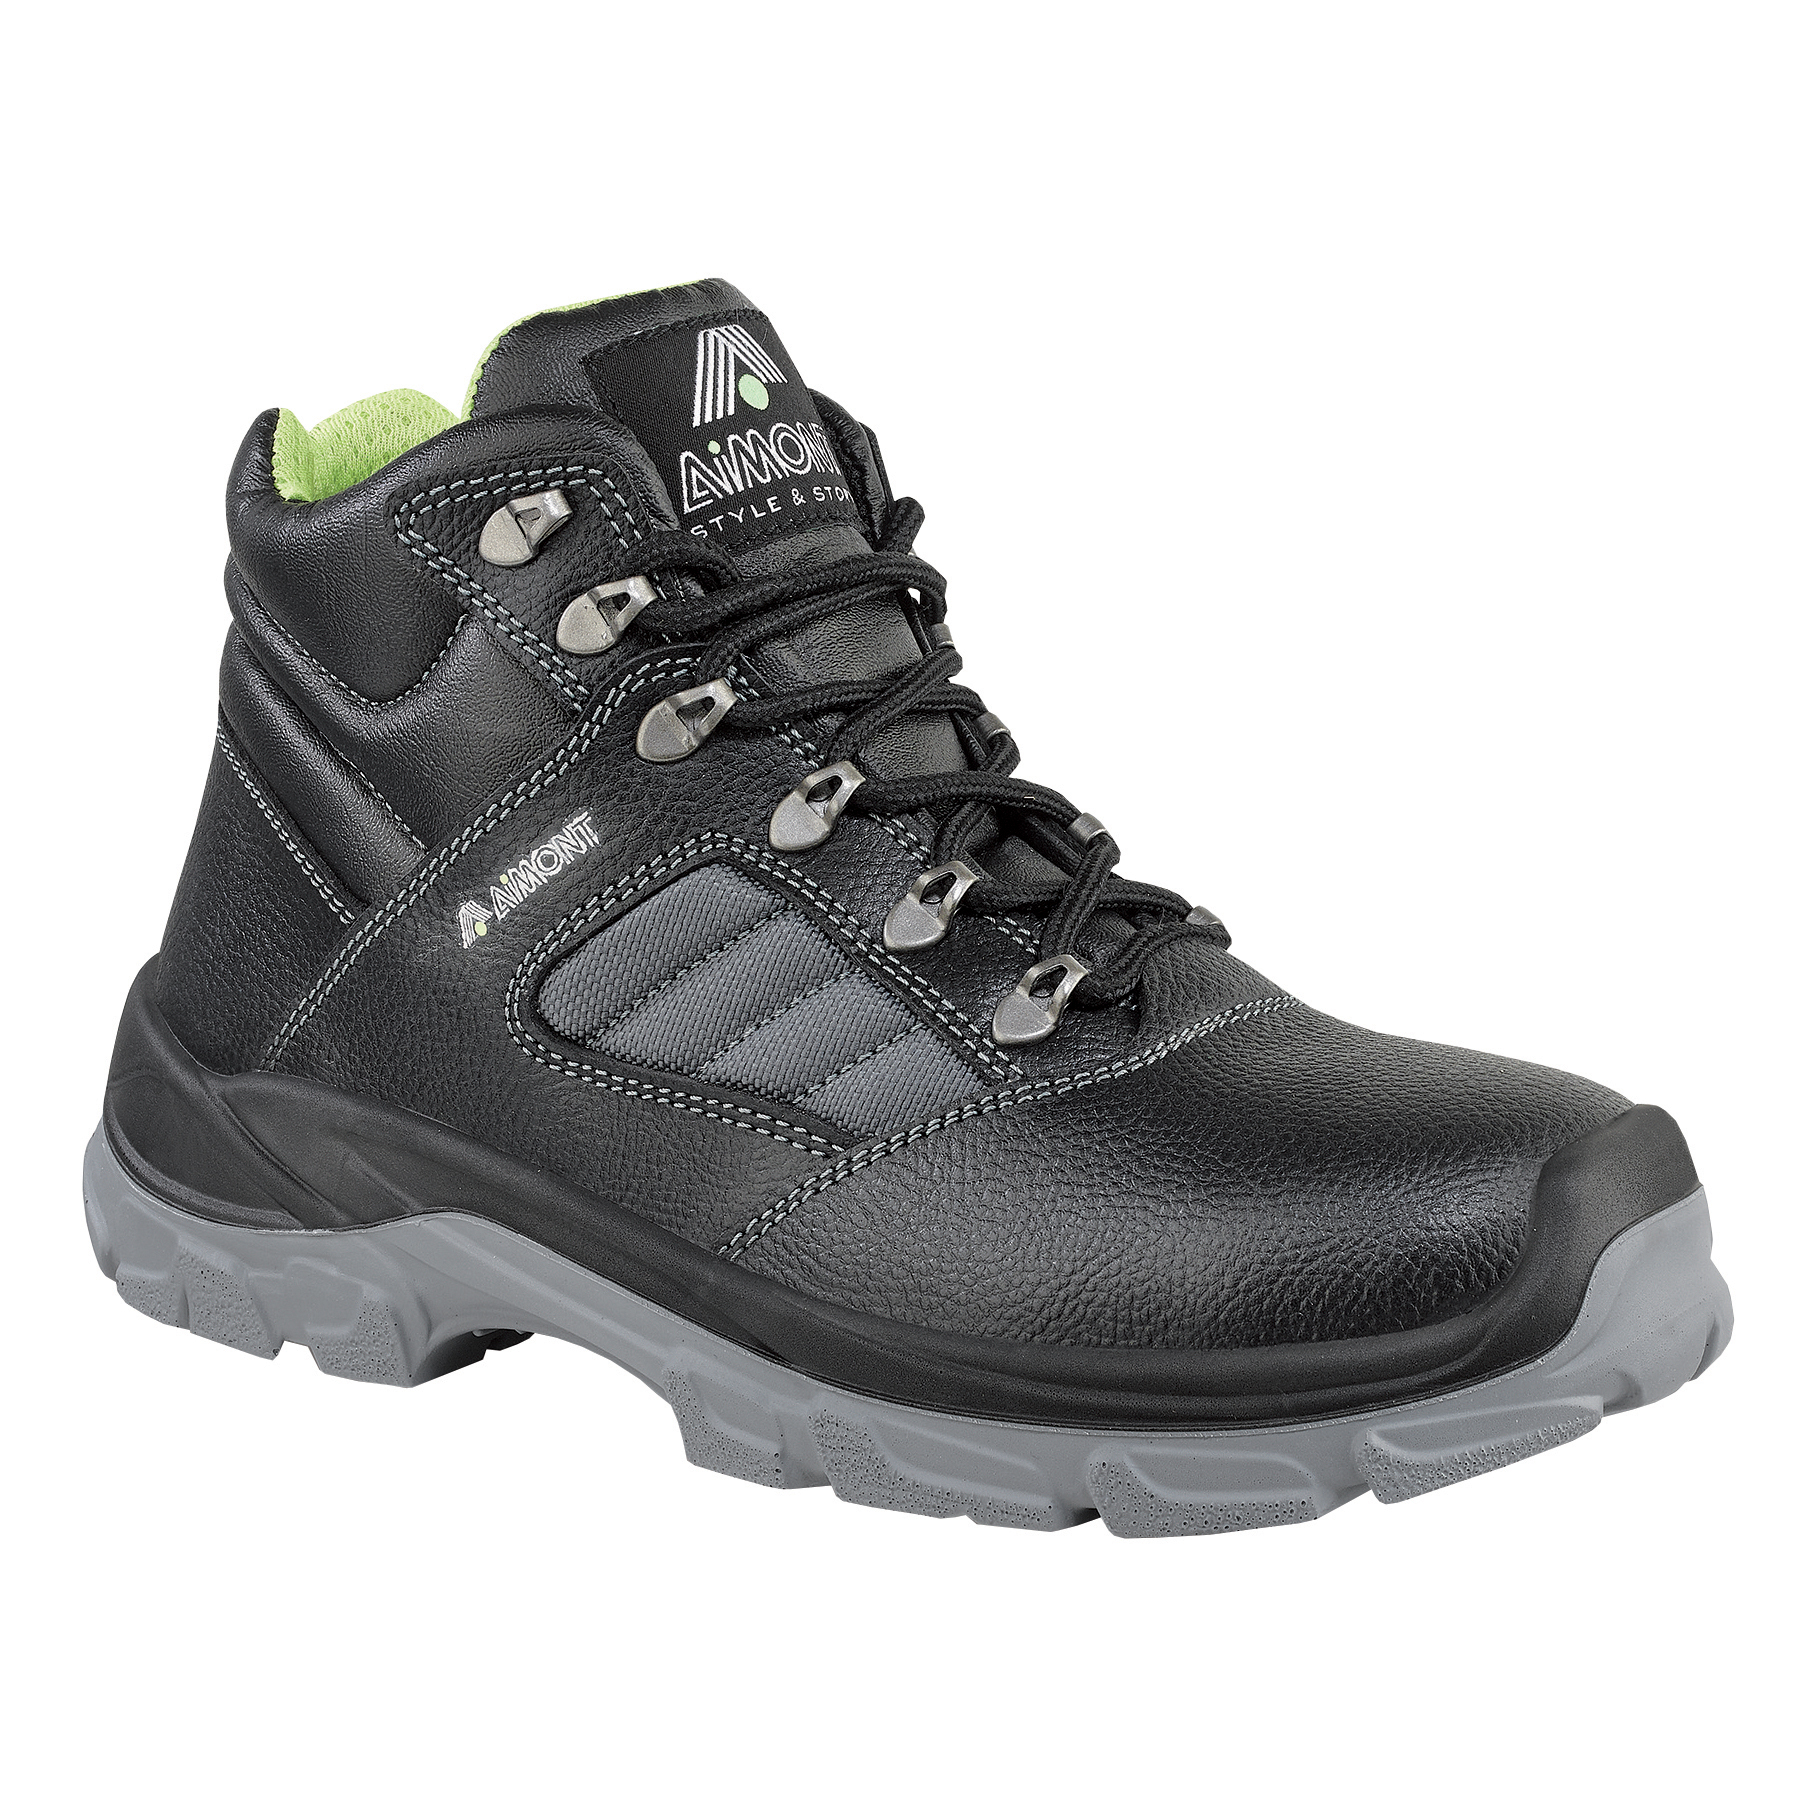 Aimont Rhino Safety Boots Protective Toecap Size 11 Black Ref DYC0511 [Pair]